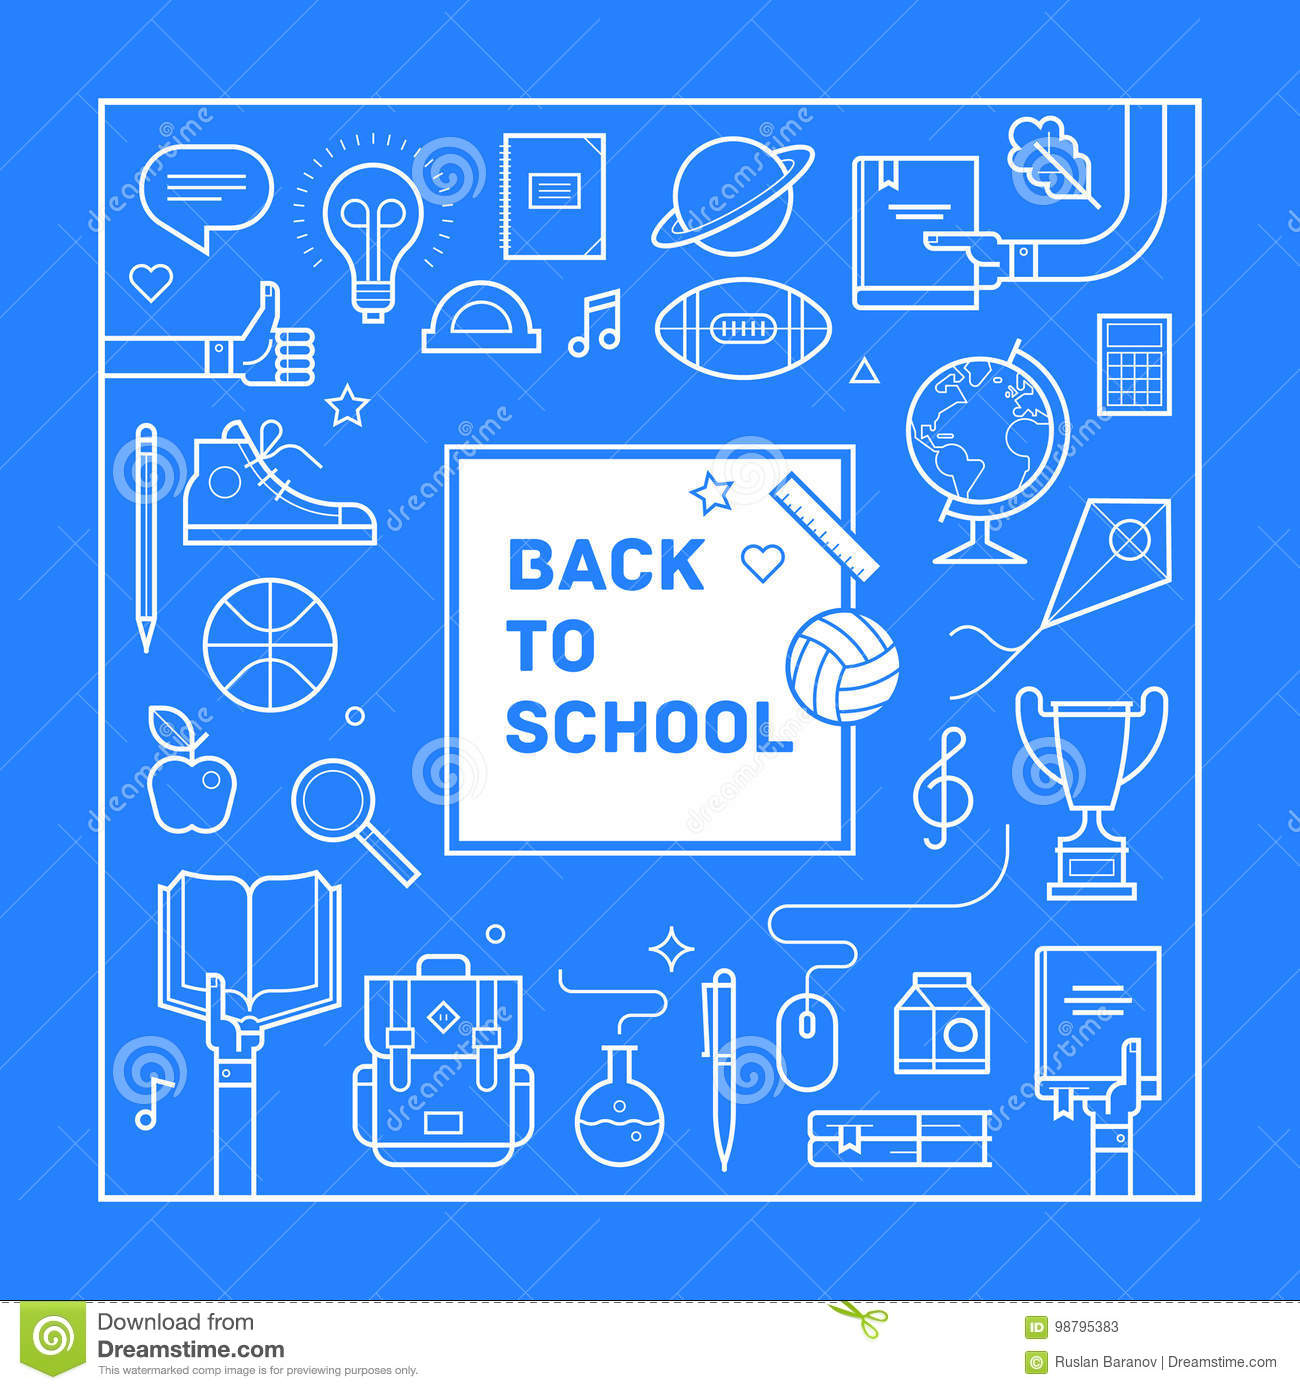 Back to school poster or invitation design in trendy linear style download back to school poster or invitation design in trendy linear style set of different stopboris Gallery